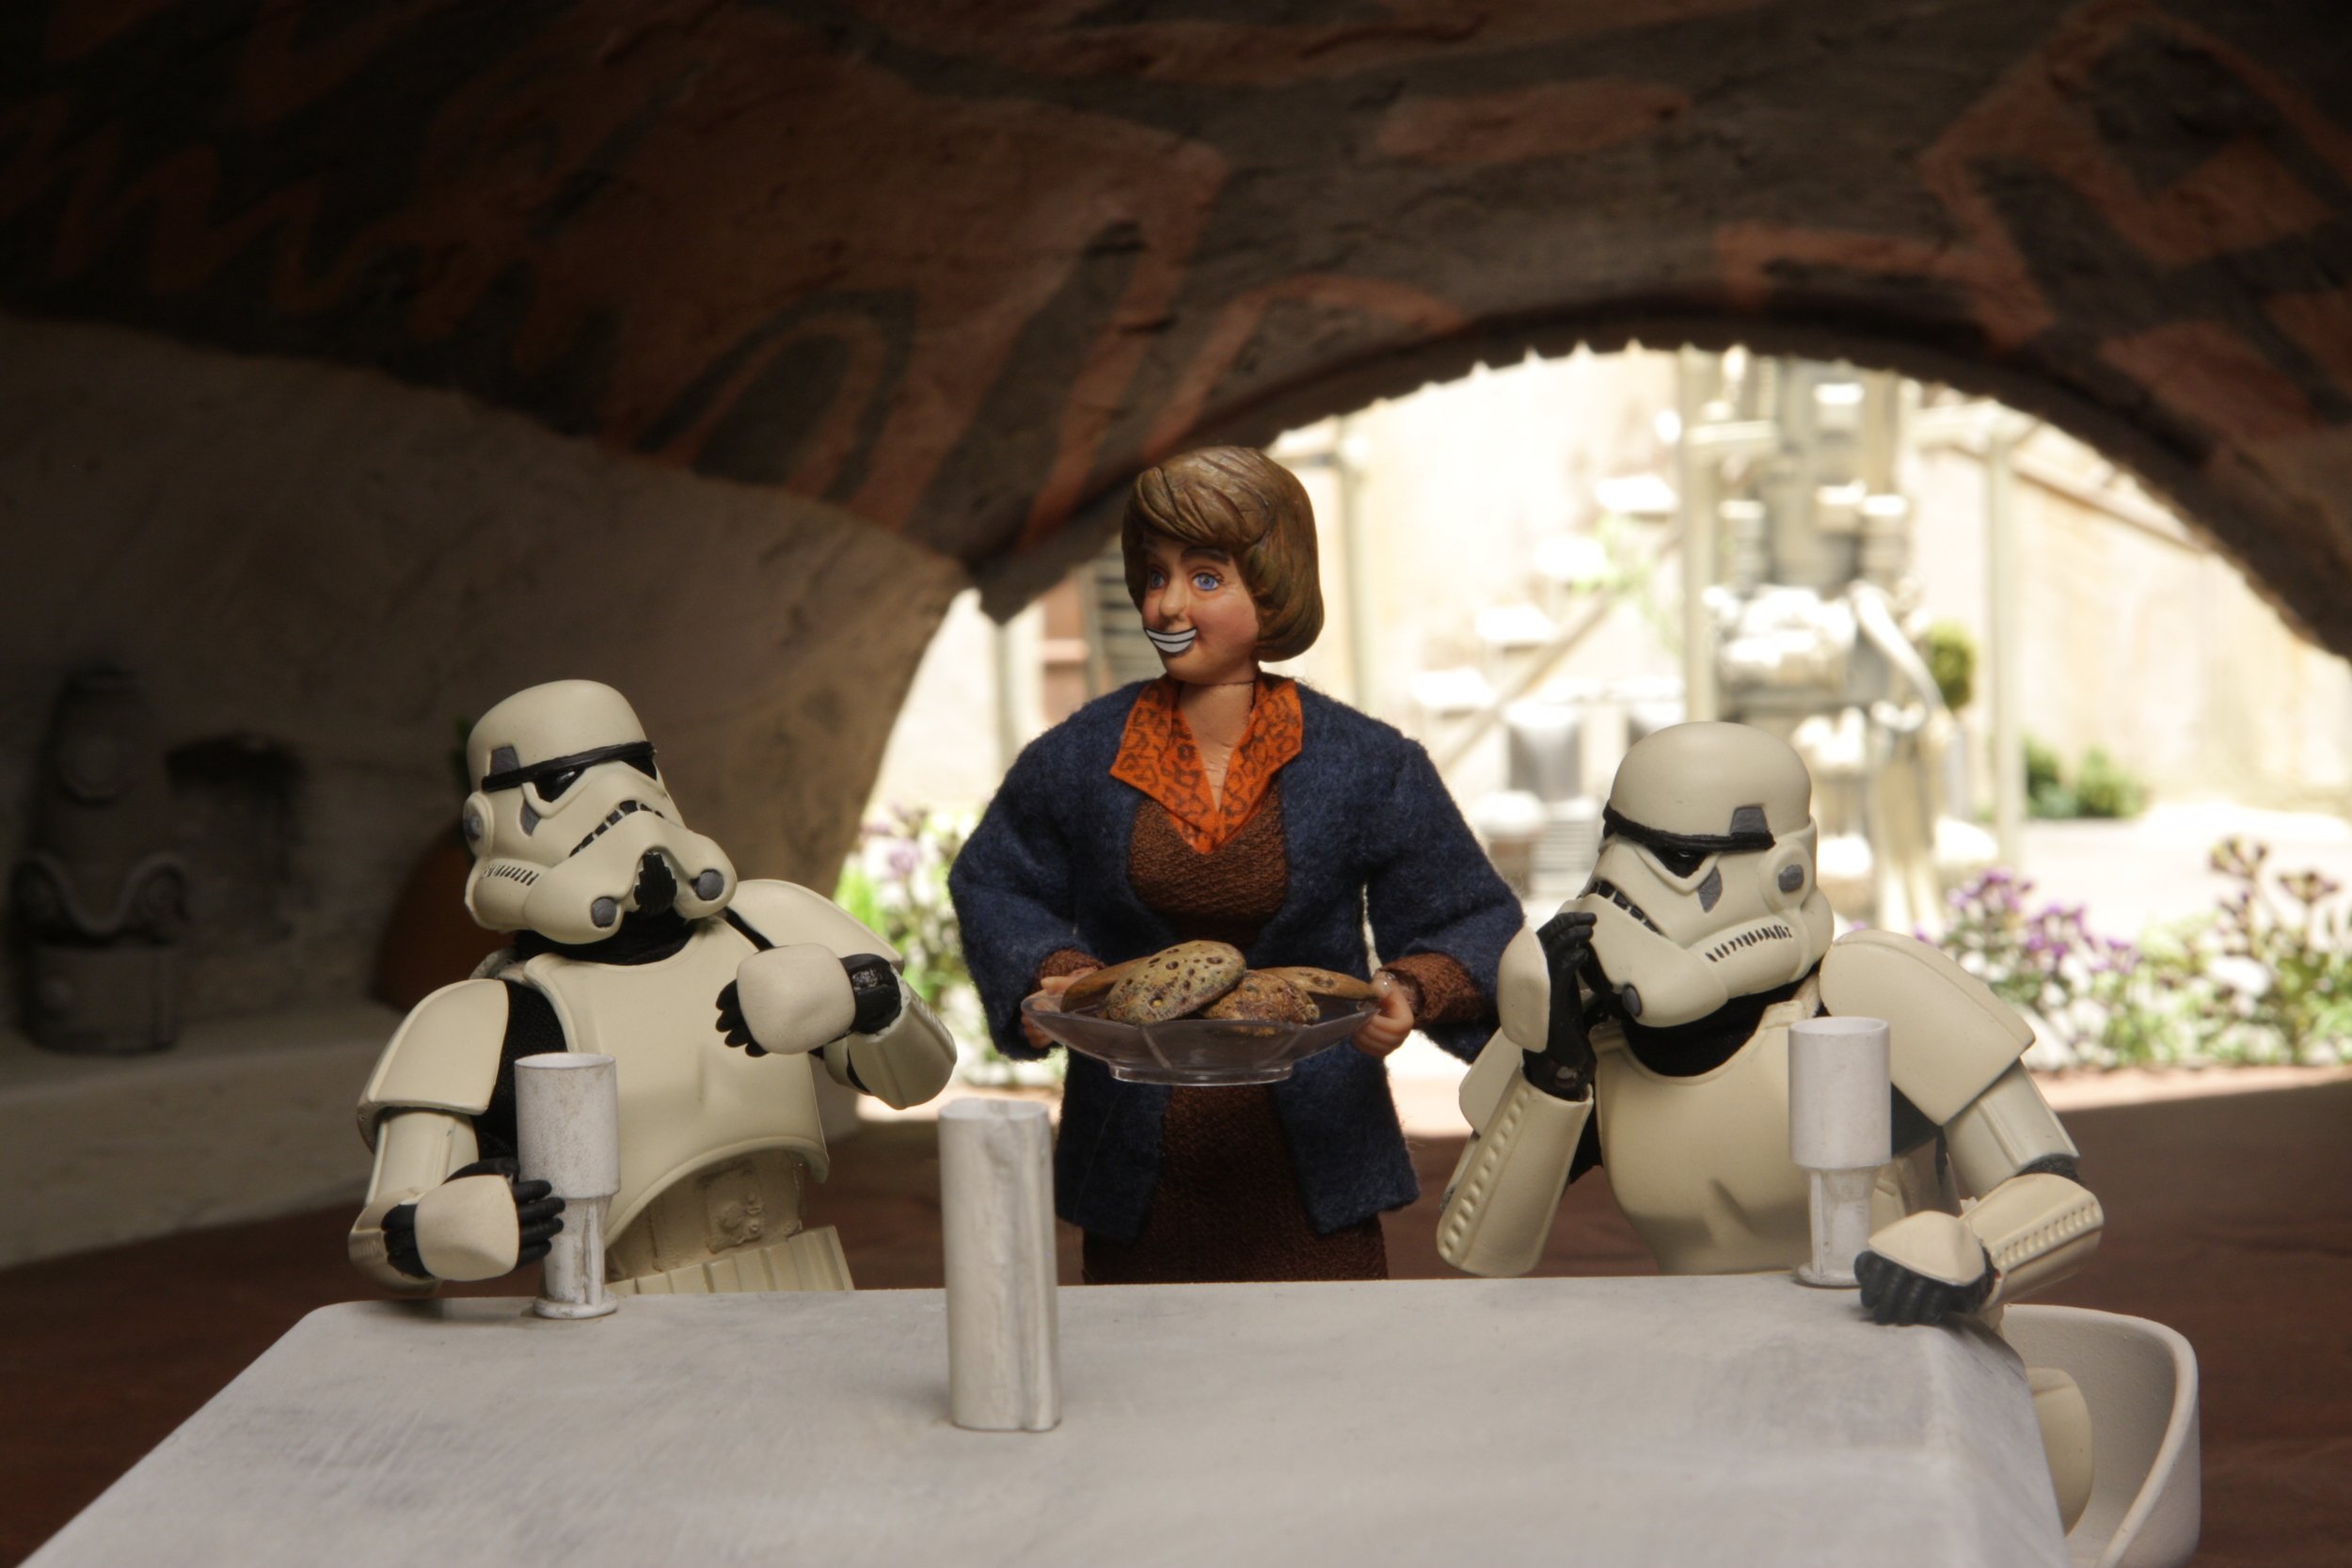 Robot Chicken Star Wars 2 Image 26.jpg